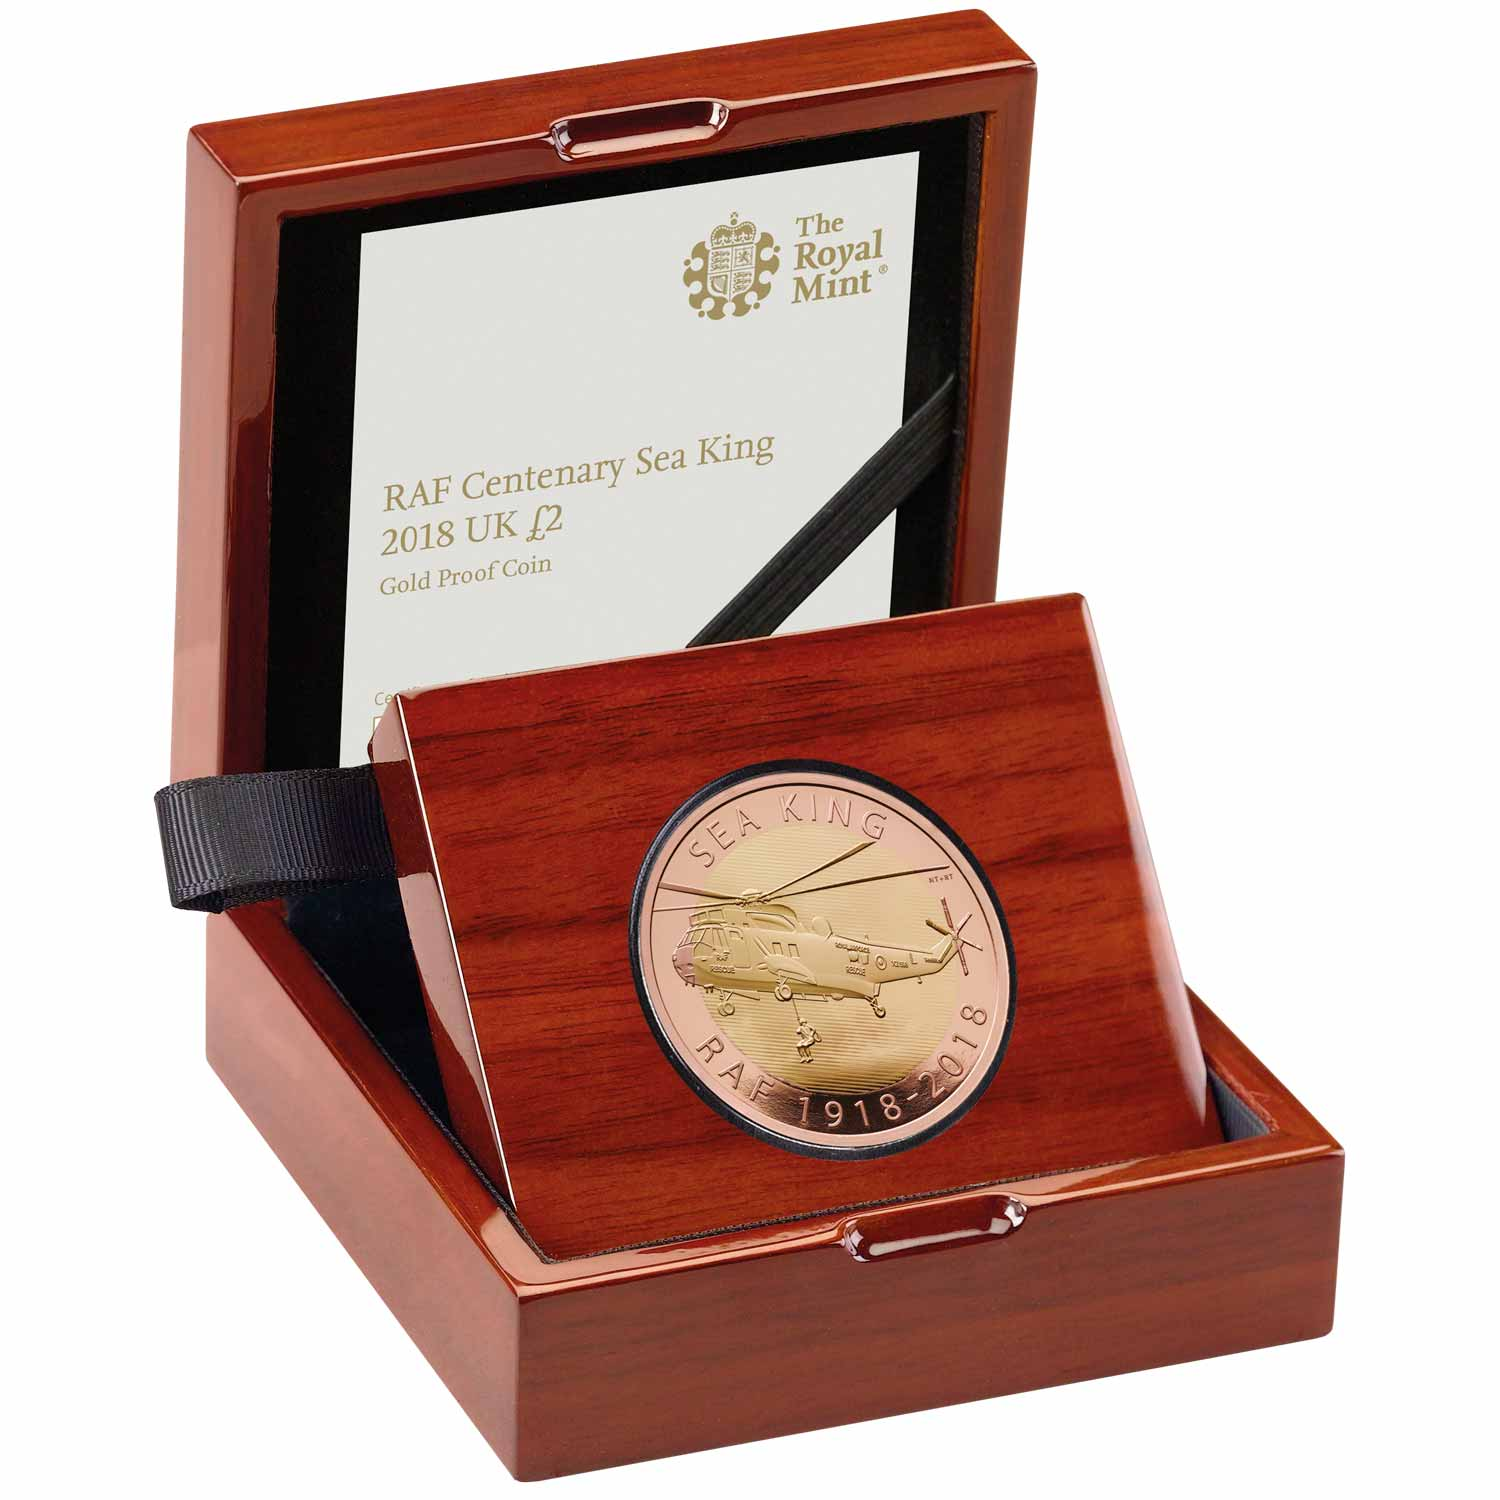 RAF Centenary Sea King 2018 UK £2 Gold Proof Coin